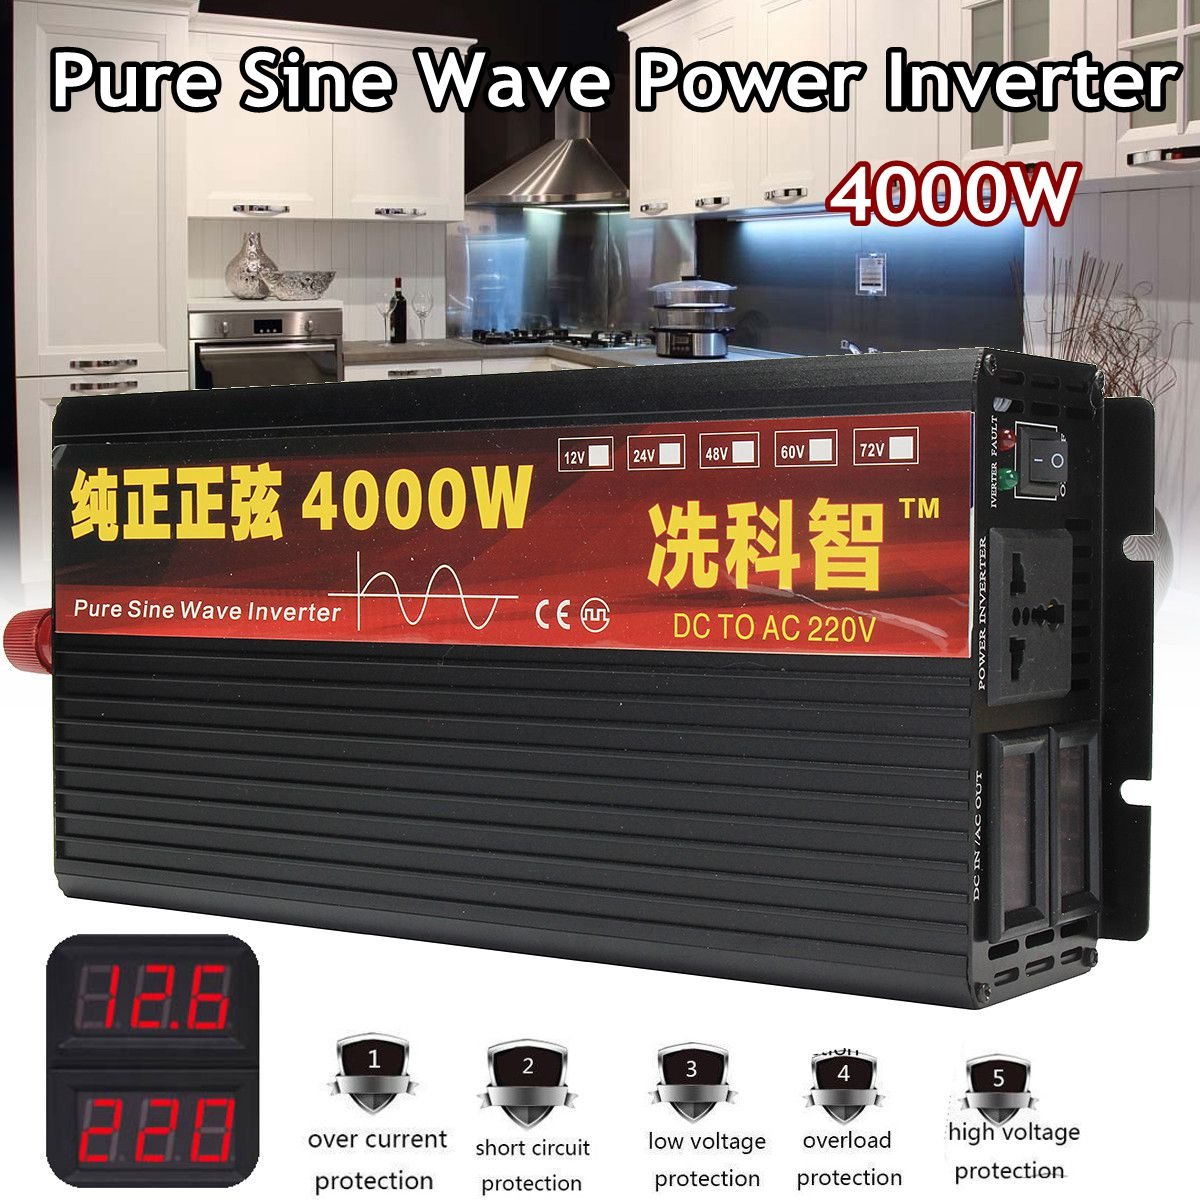 Inverter 12V 220V 2000/3000/4000W Voltage Transformer Pure Sine Wave Power Inverter DC12V To AC 220V Converter + 2 LED Display